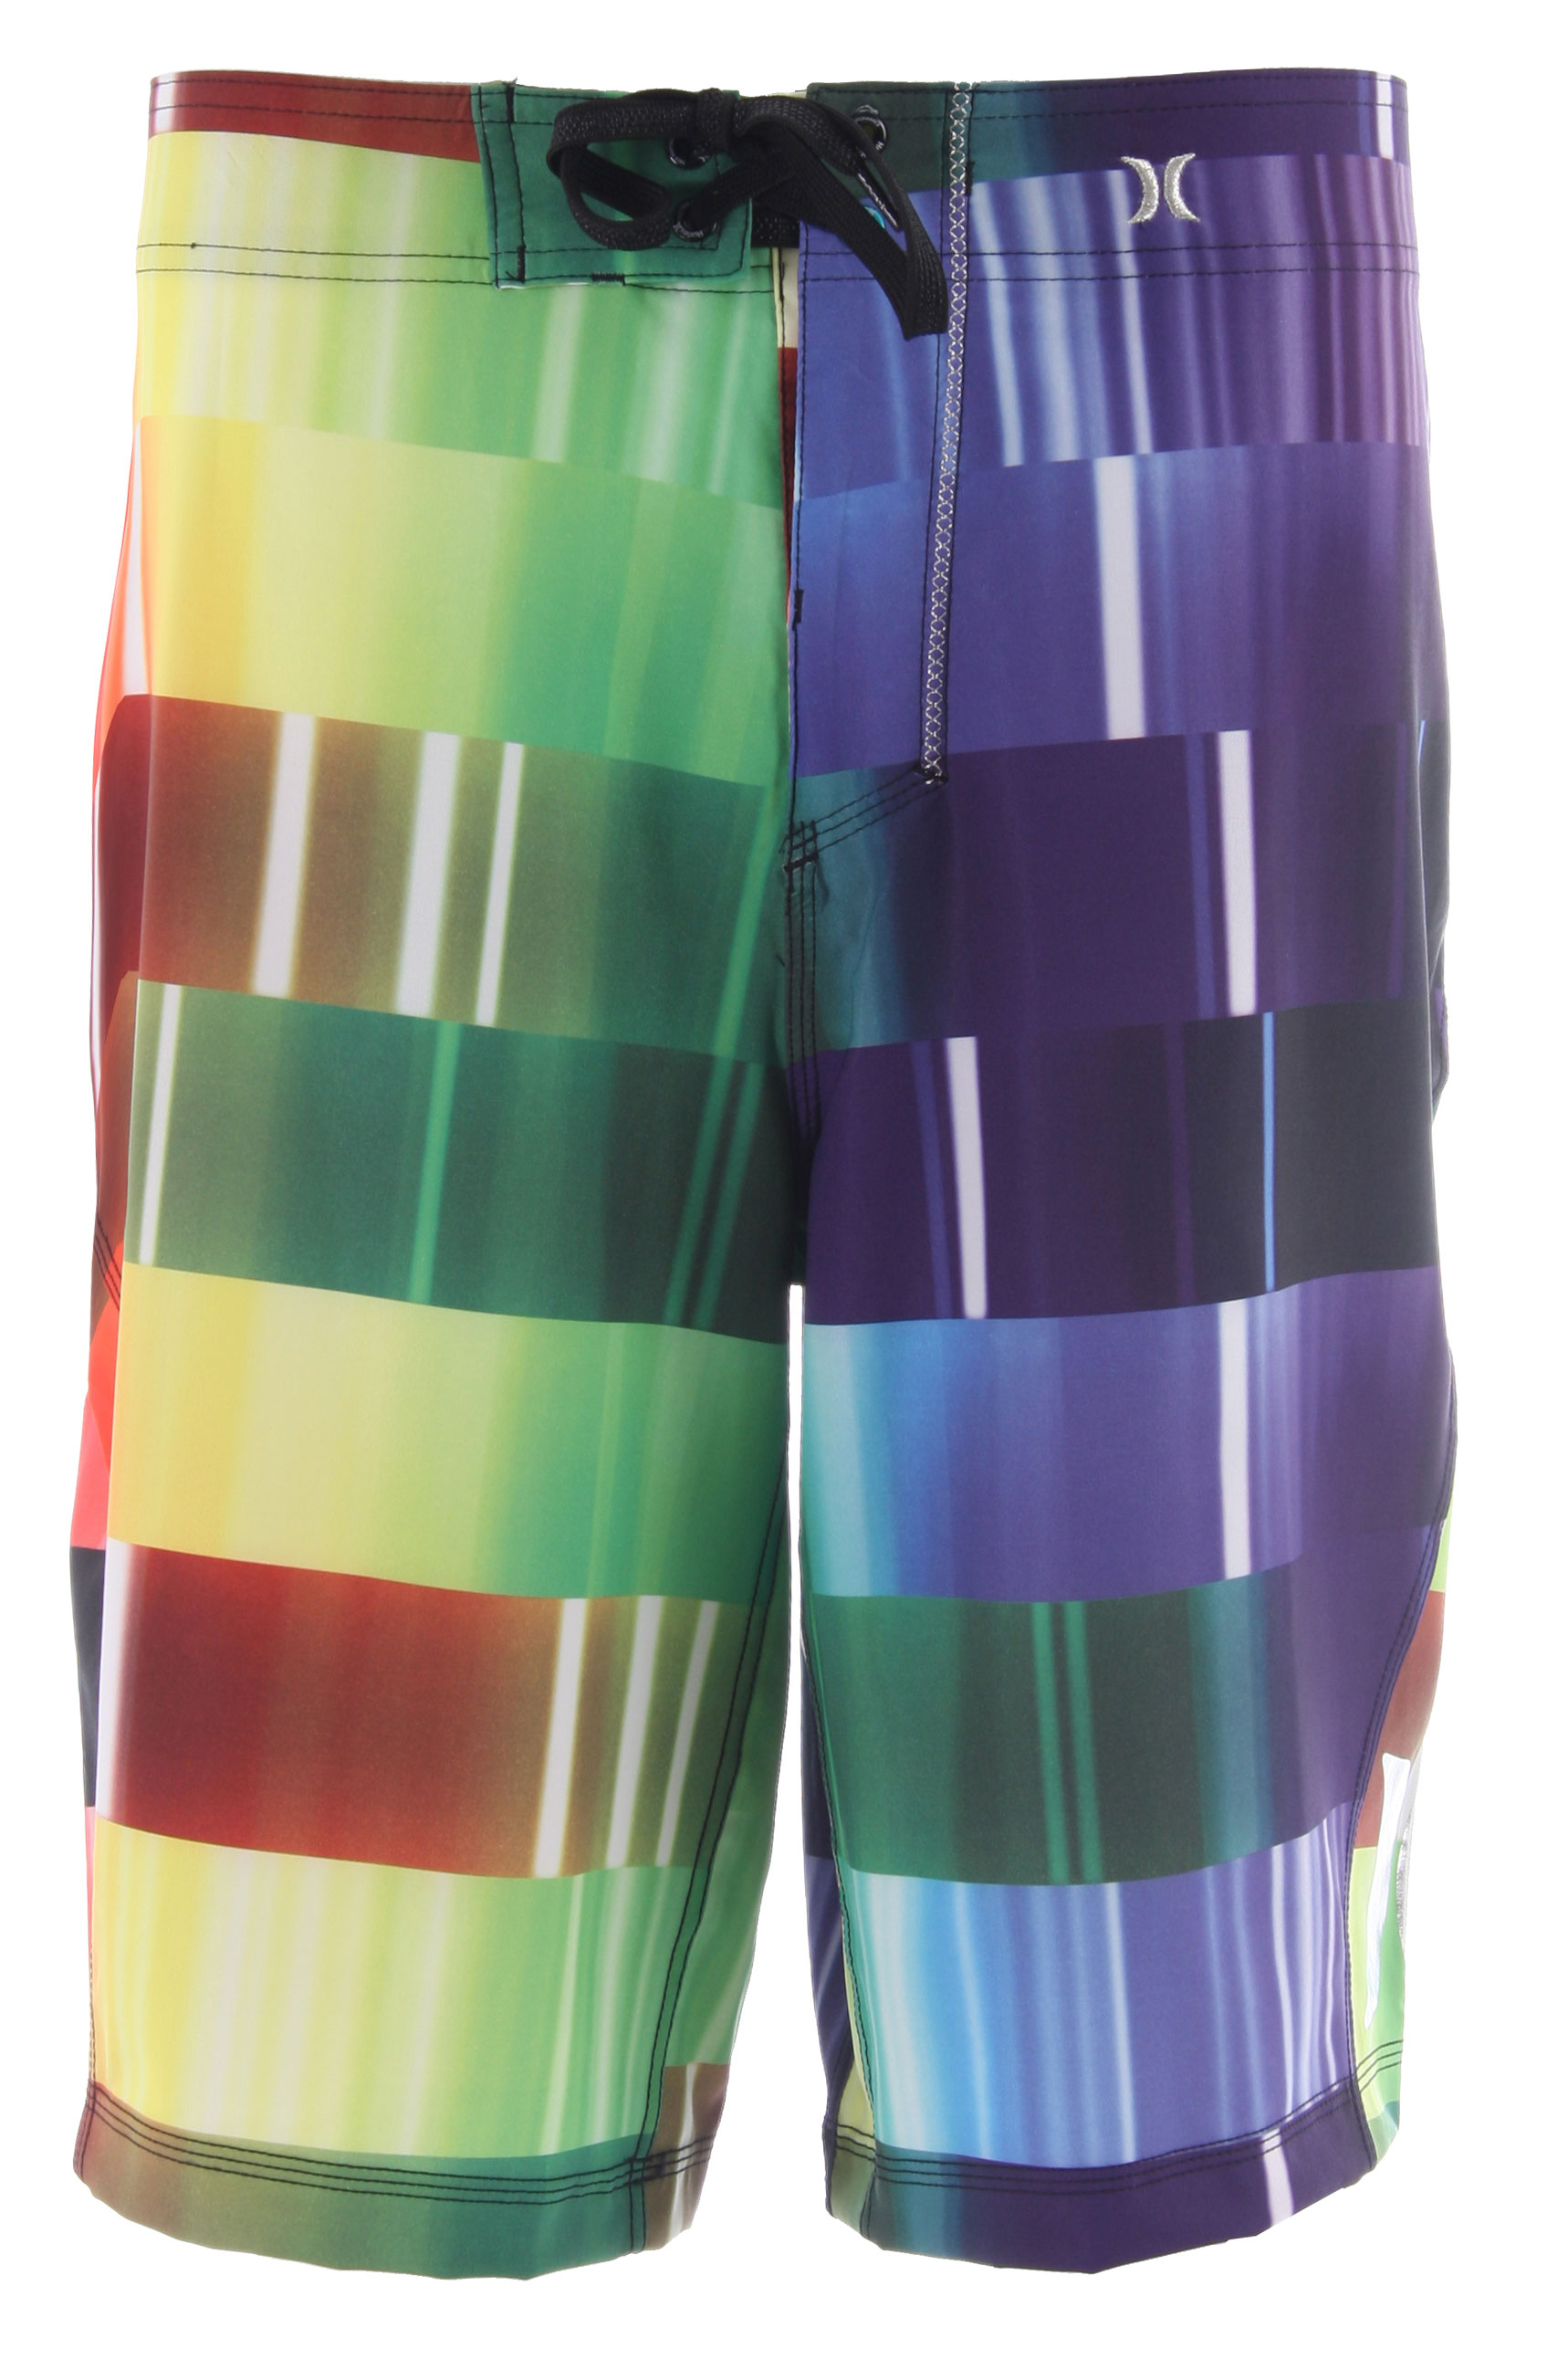 Surf Key Features of the Hurley Phantom 60 Galaxy Boardshorts: True Performance Fit Recycled Phantom 60% stretch Seasonal print patented EZ fly closure signature foil branding performance water repellency - $39.95